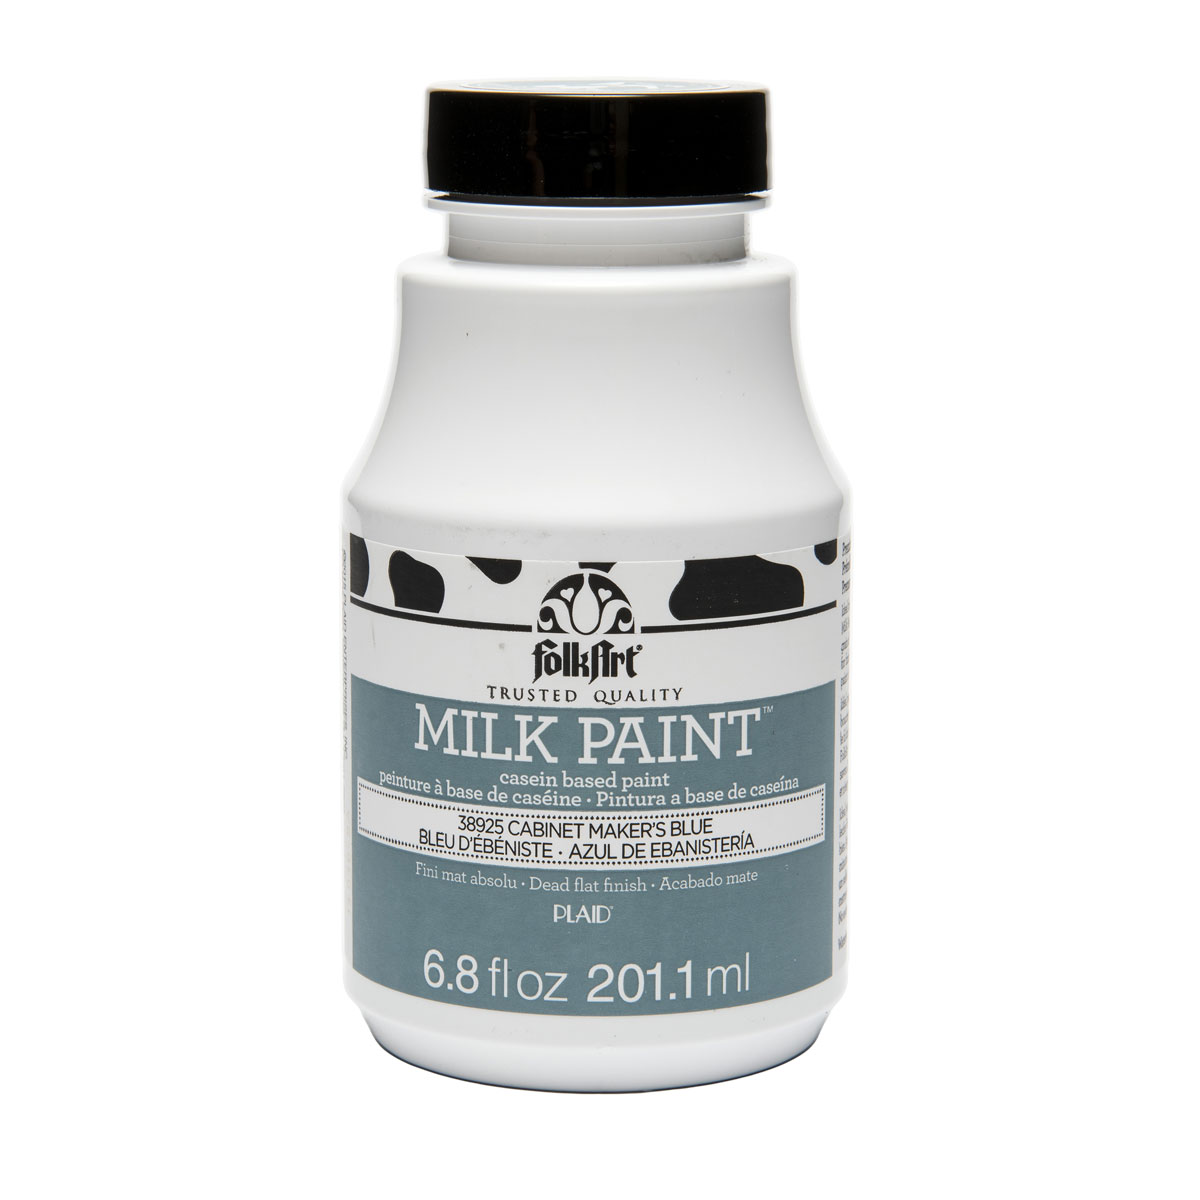 FolkArt ® Milk Paint™ - Cabinet Maker's Blue, 6.8 oz.